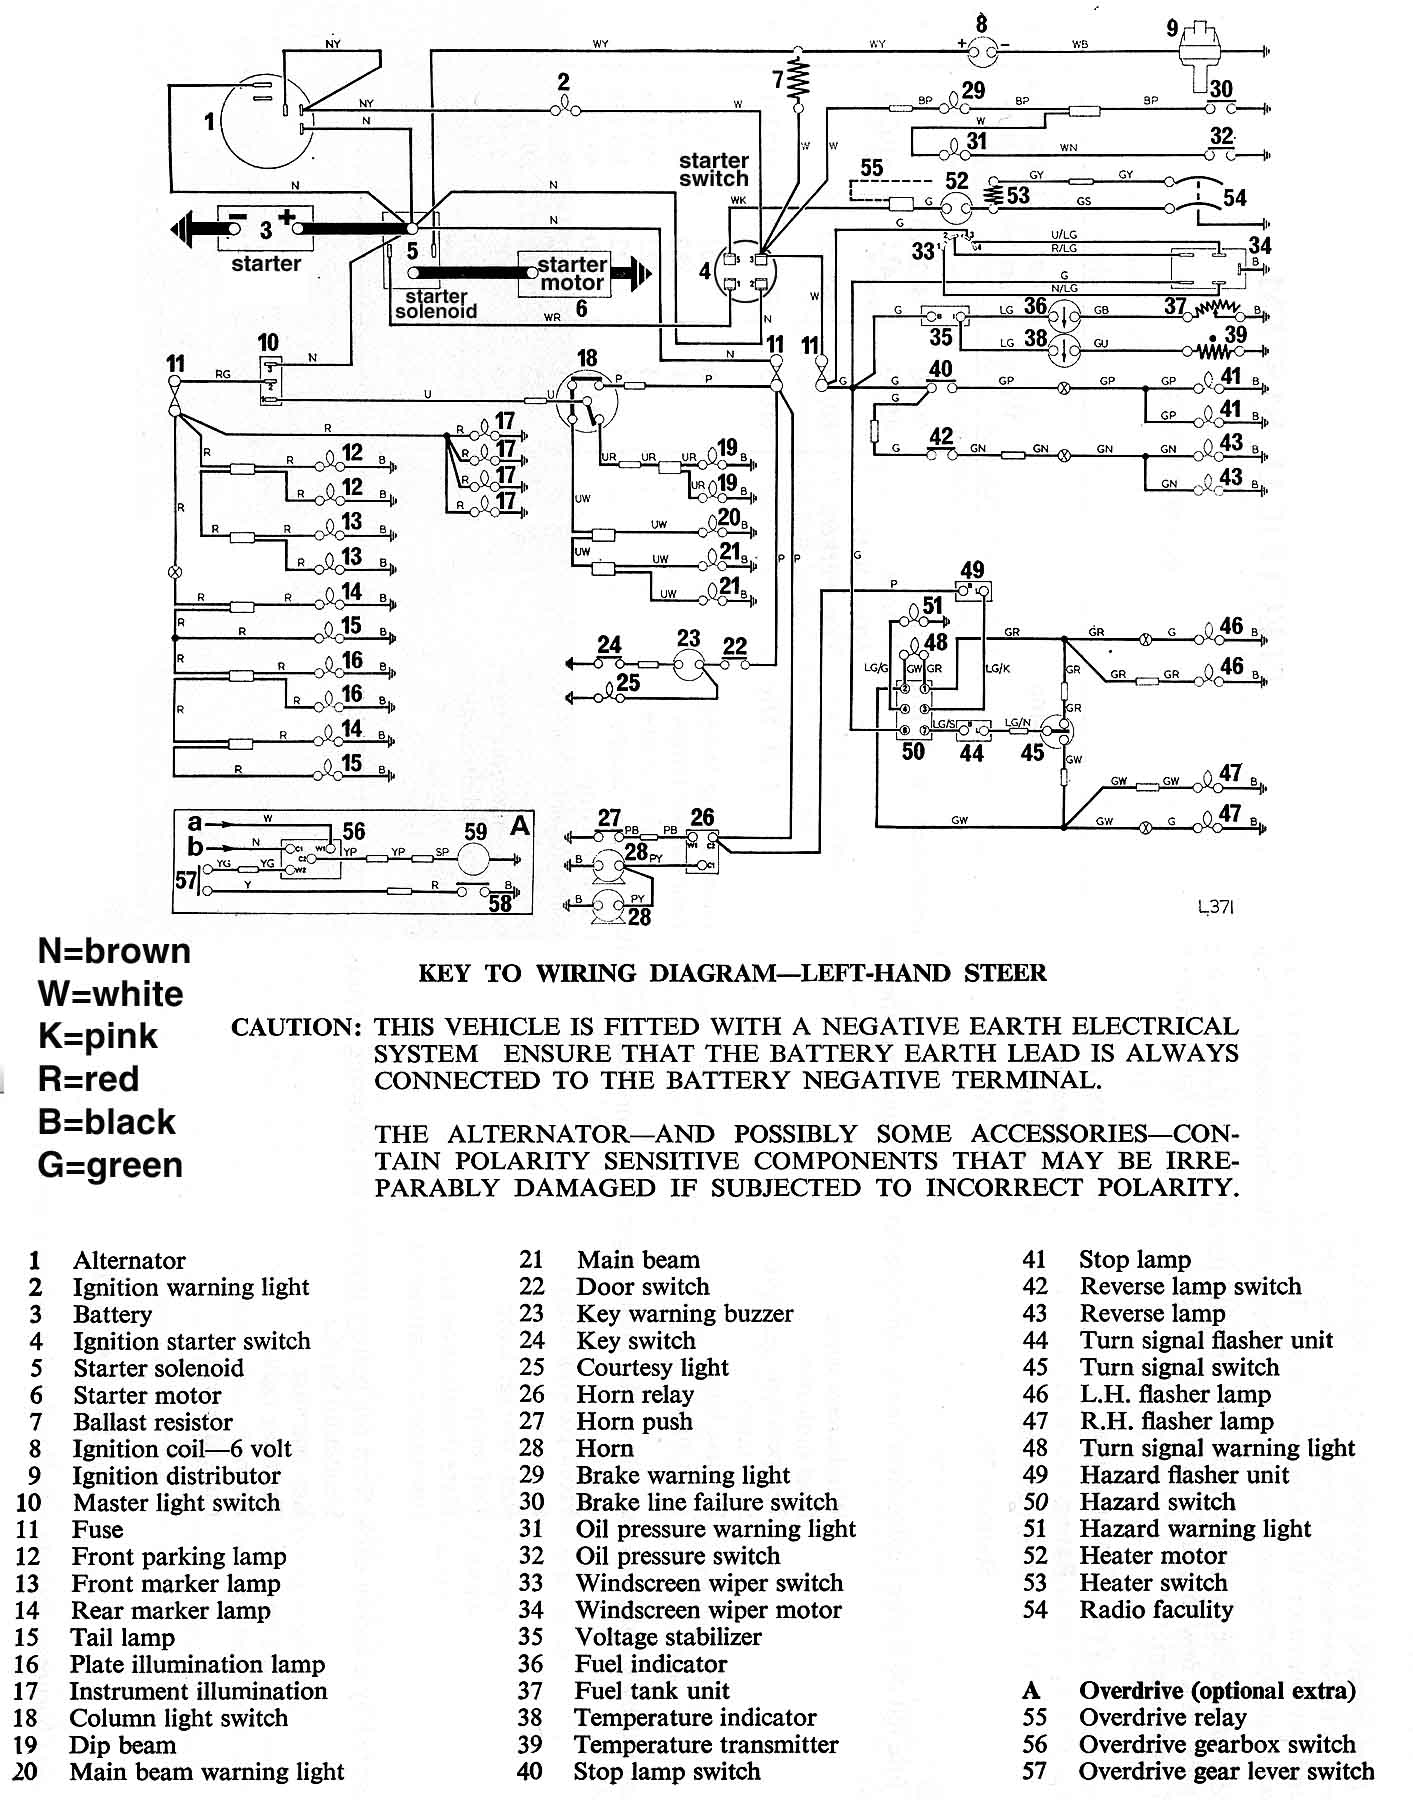 MKIVwire 1974 spitfire 1500 wire diagram spitfire & gt6 forum triumph 1974 triumph spitfire wiring diagram at creativeand.co